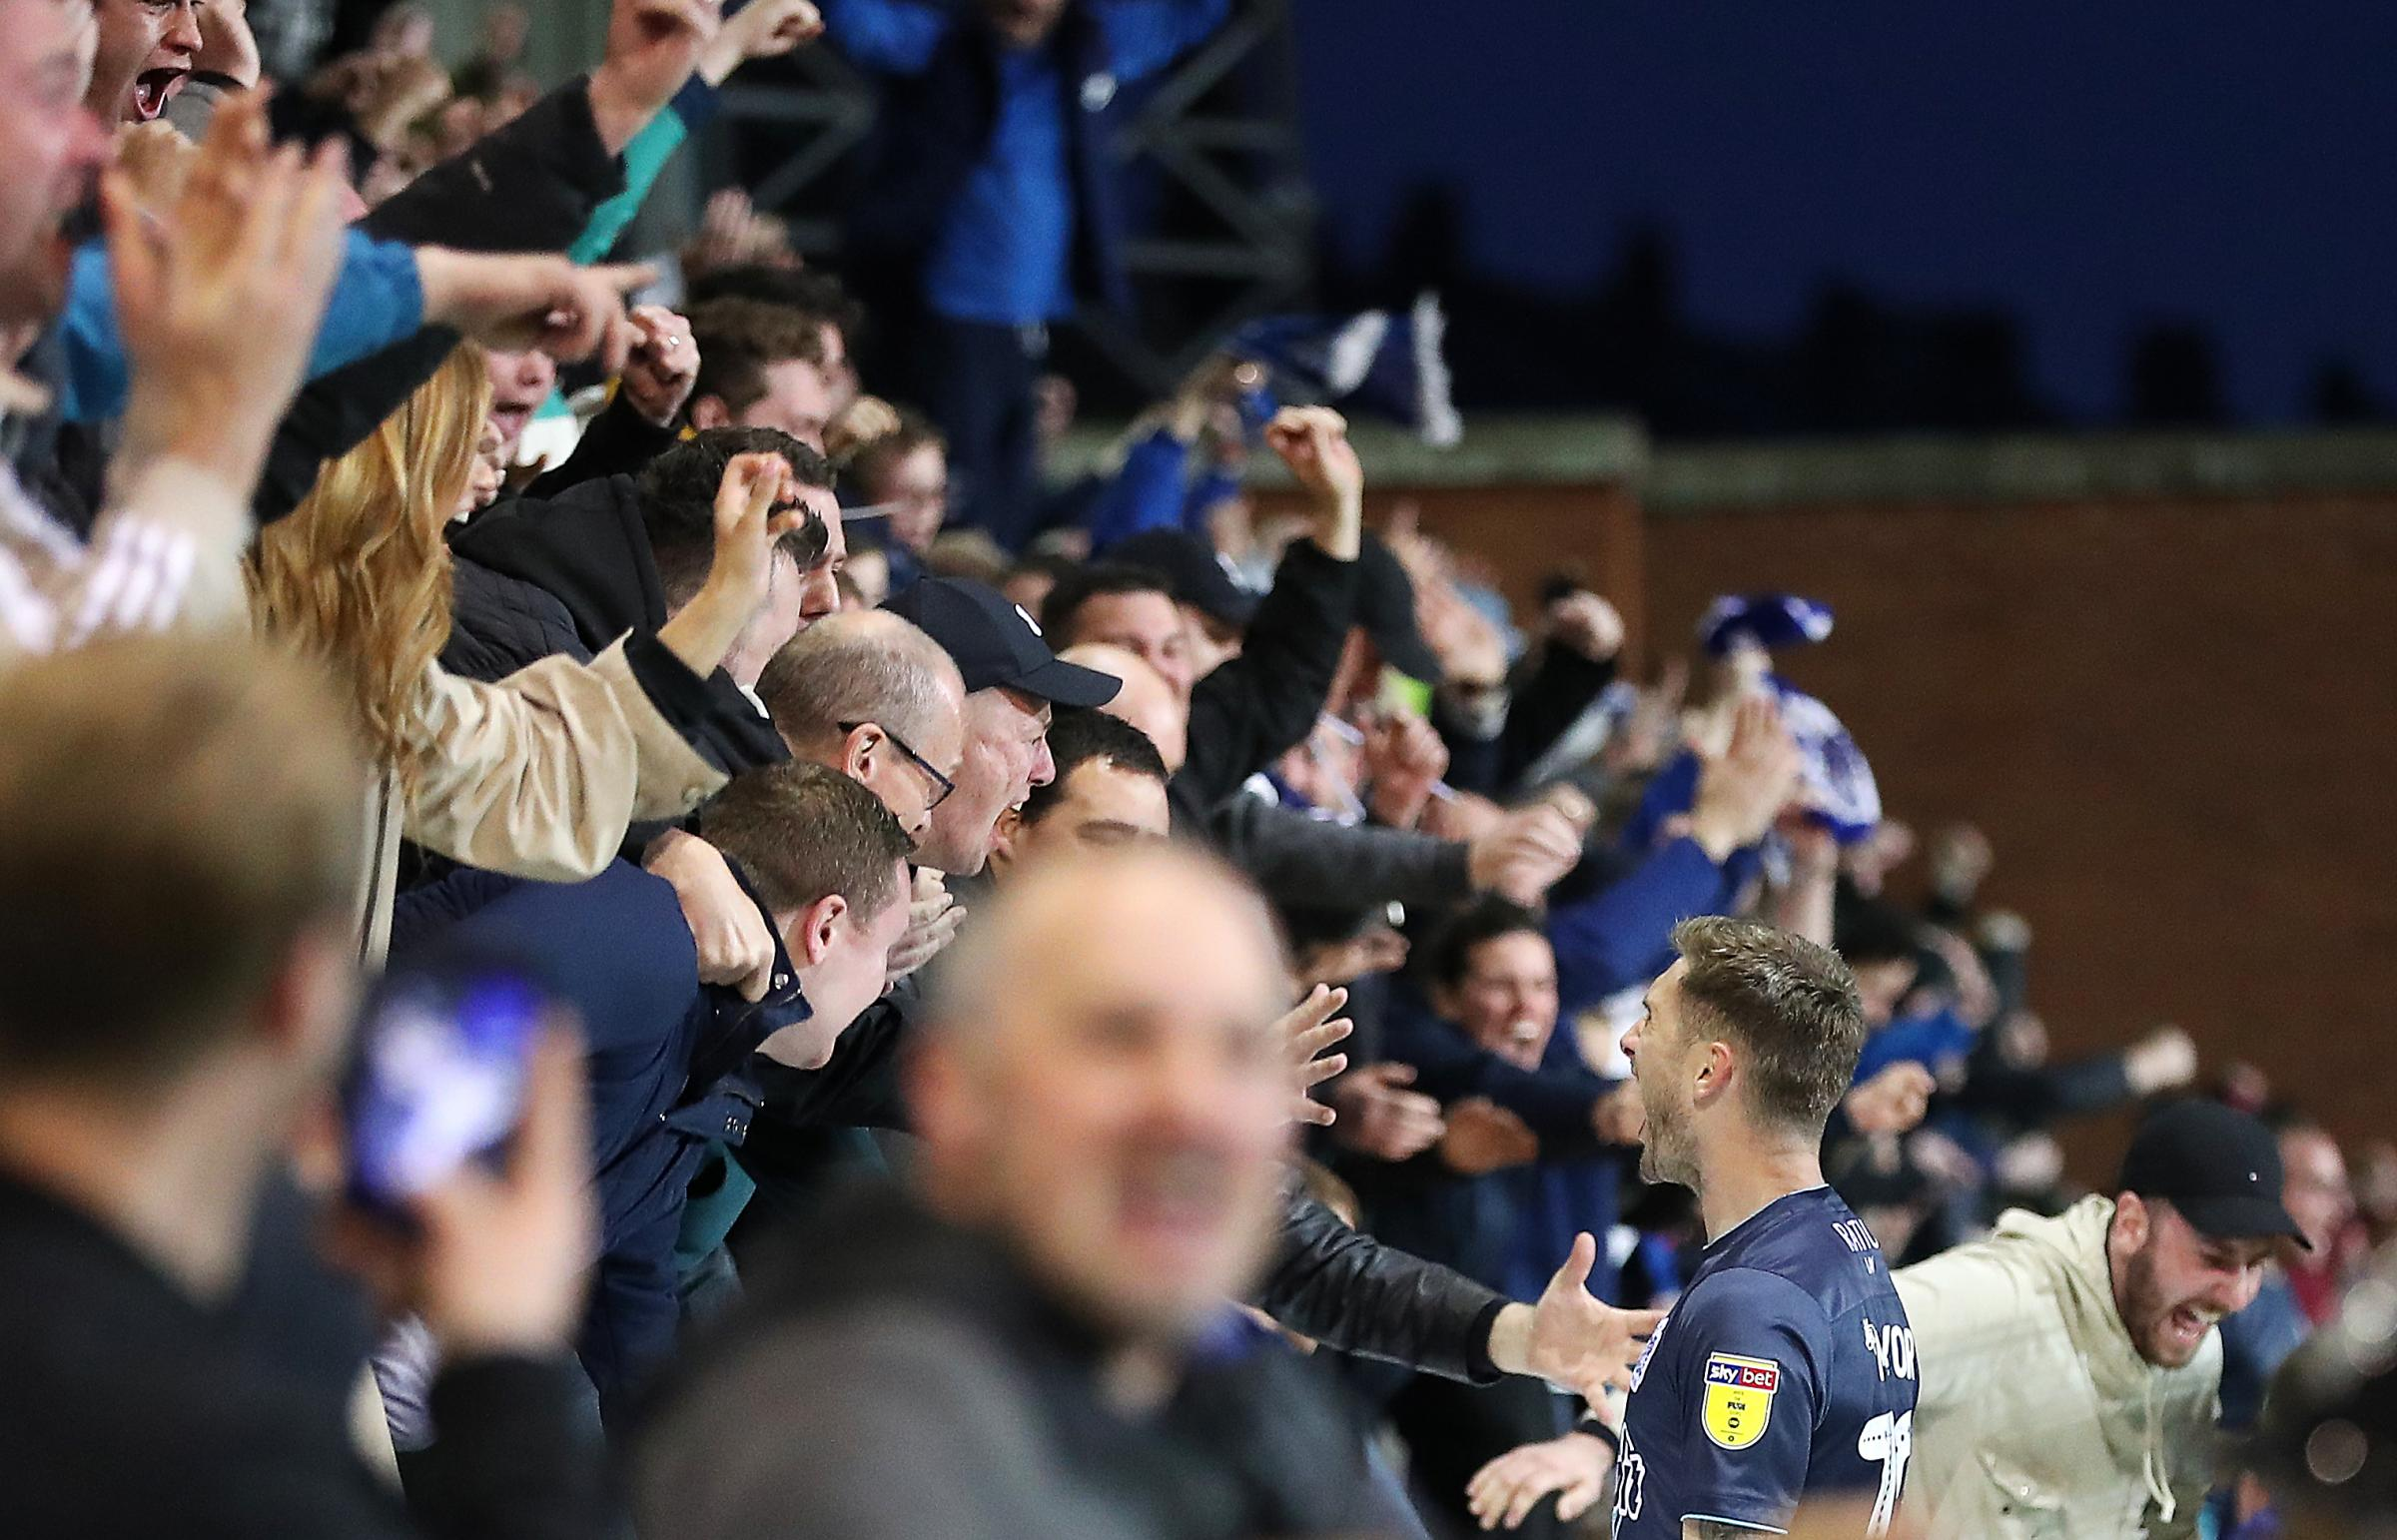 Bury fans offered chance to attend Radcliffe game for free